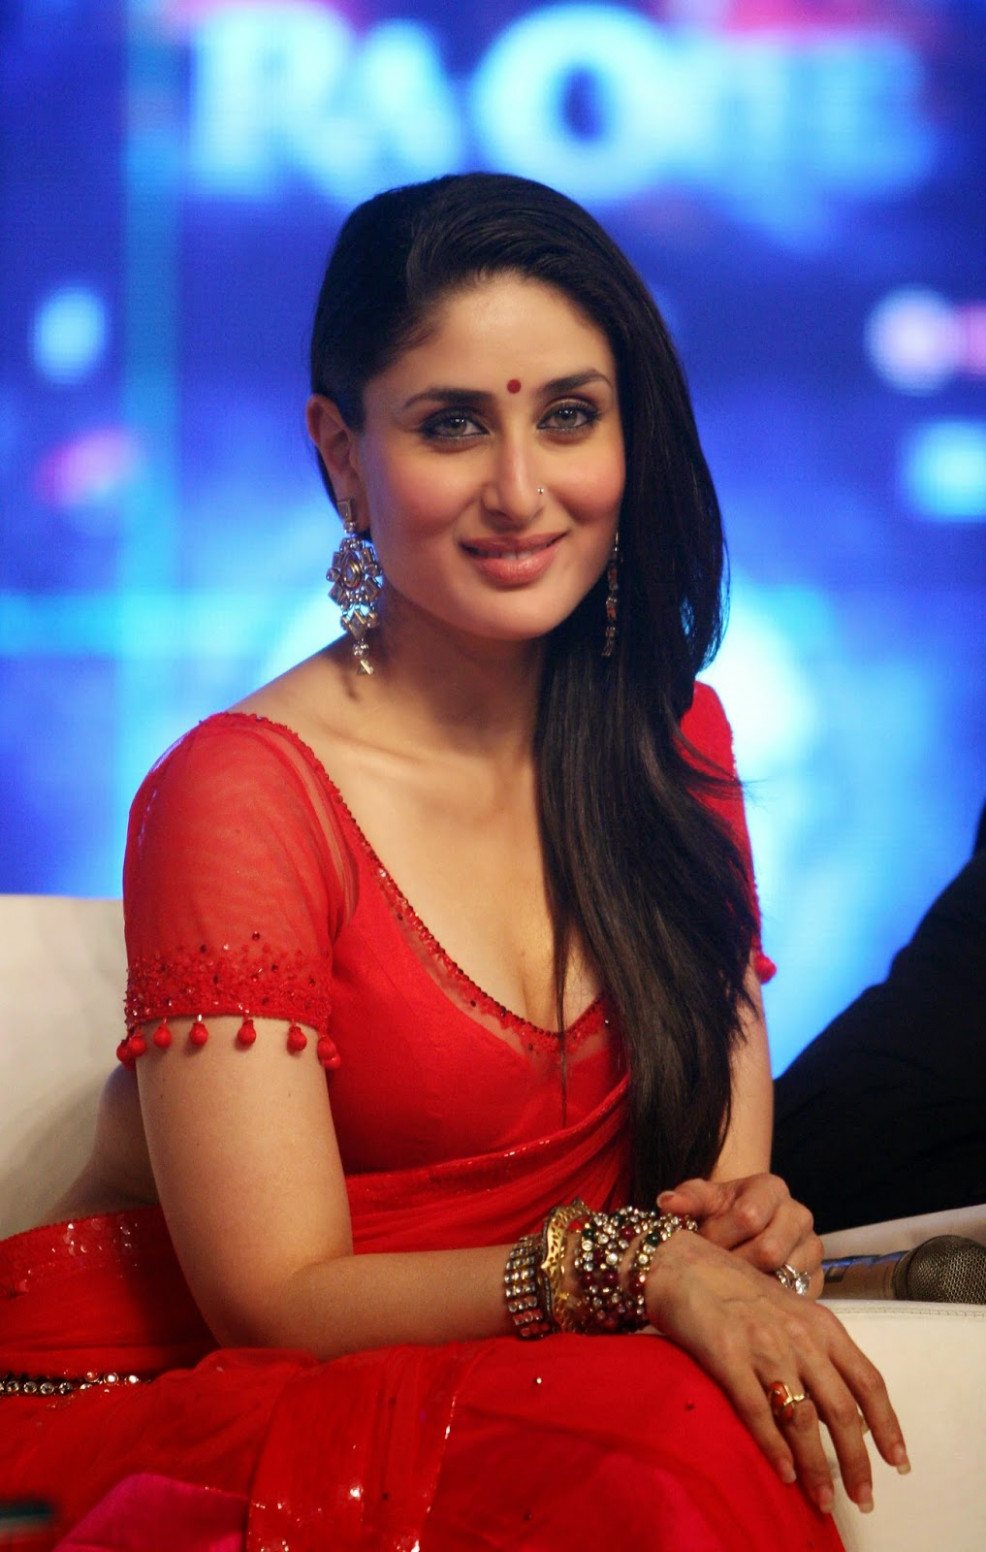 High Quality Bollywood Celebrity Pictures: Kareena Kapoor